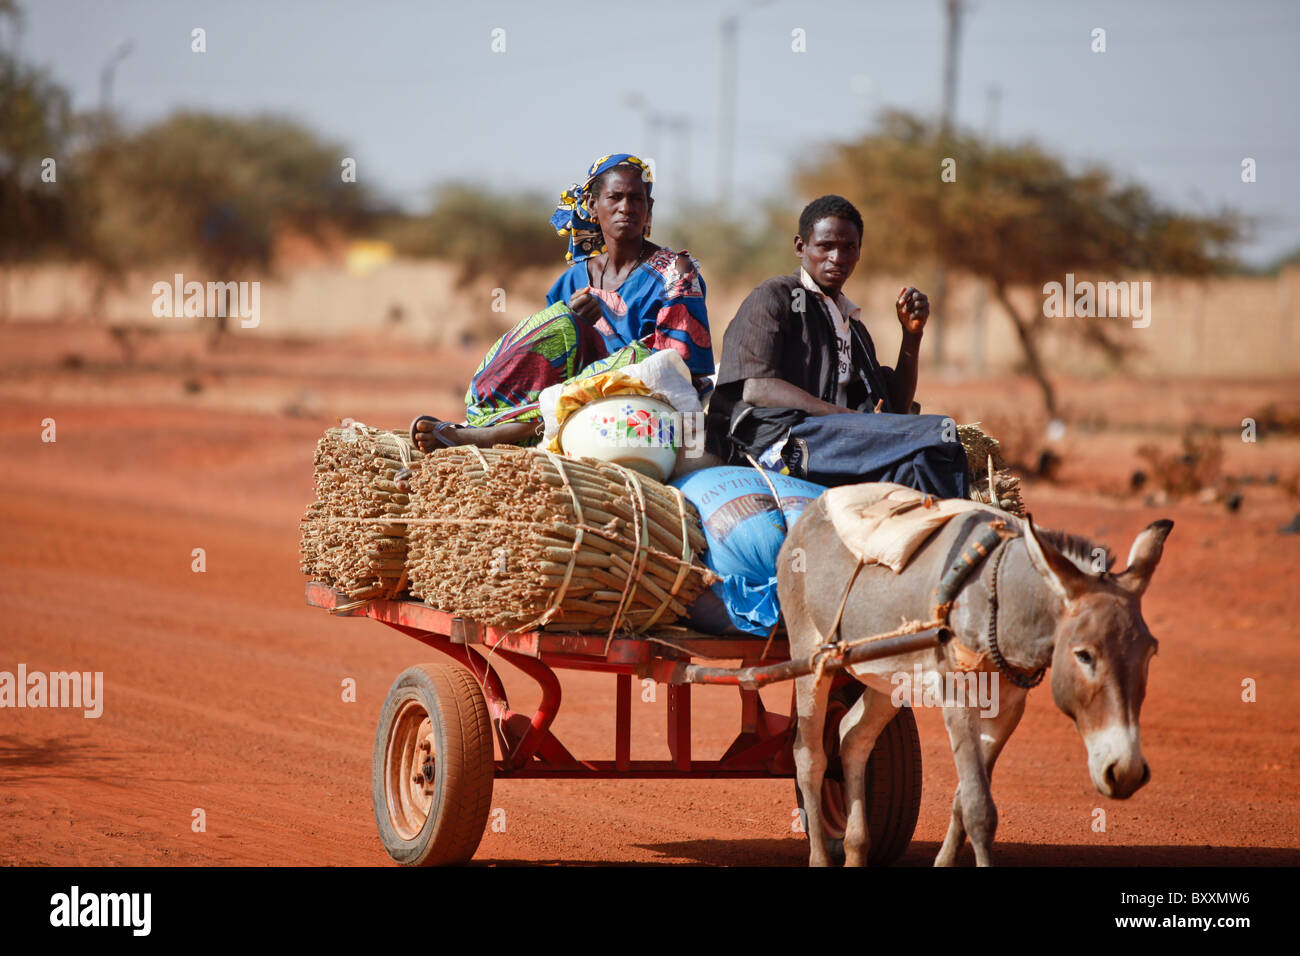 A family brings harvested millet to market by donkey cart in Djibo, Burkina Faso. - Stock Image